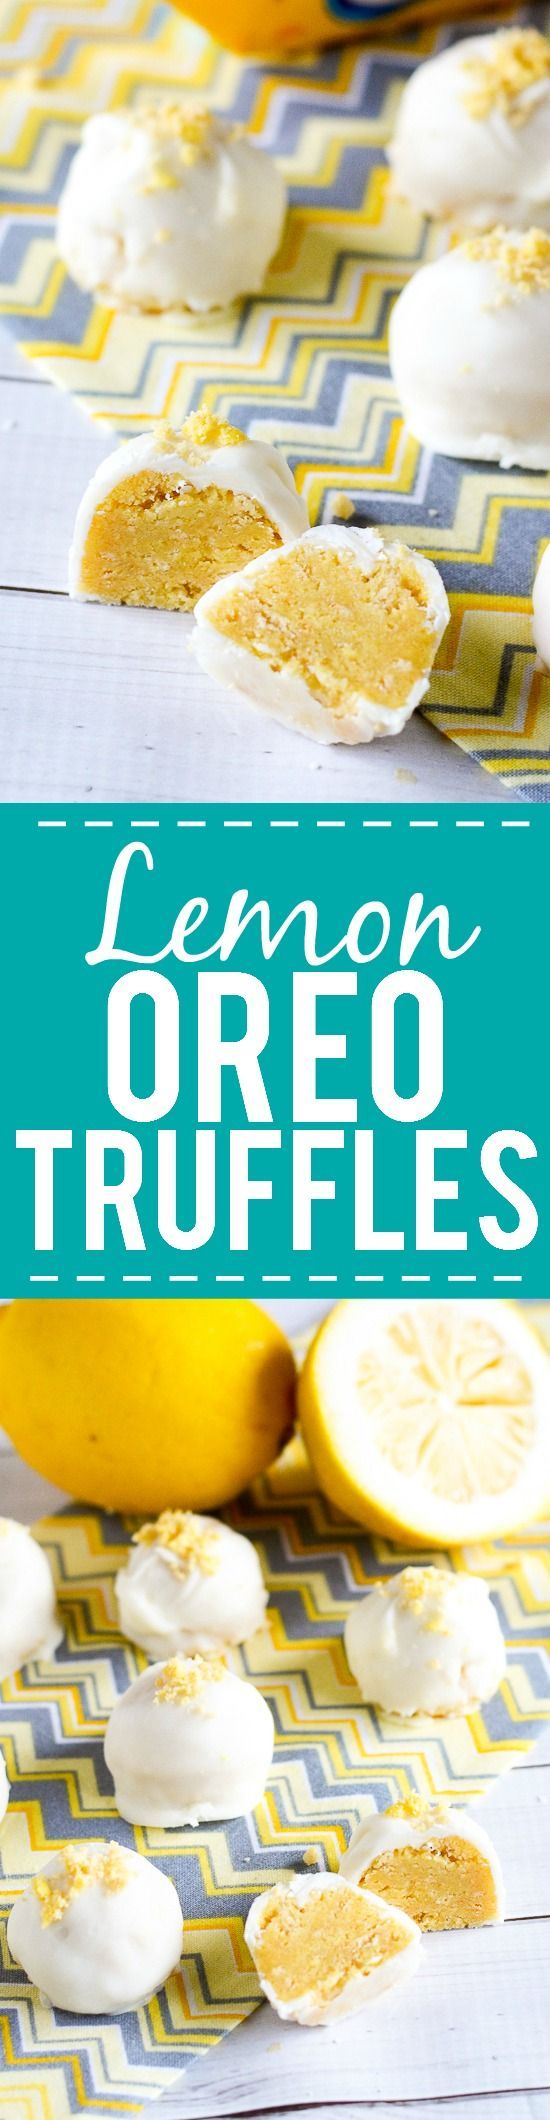 Lemon Oreo Truffles Recipe - Zesty and sweet Lemon Oreo Truffles covered in creamy white chocolate are a super easy dessert recipe that's no bake and a guaranteed hit! Easy no bake dessert recipe. Oreo truffles are the best!